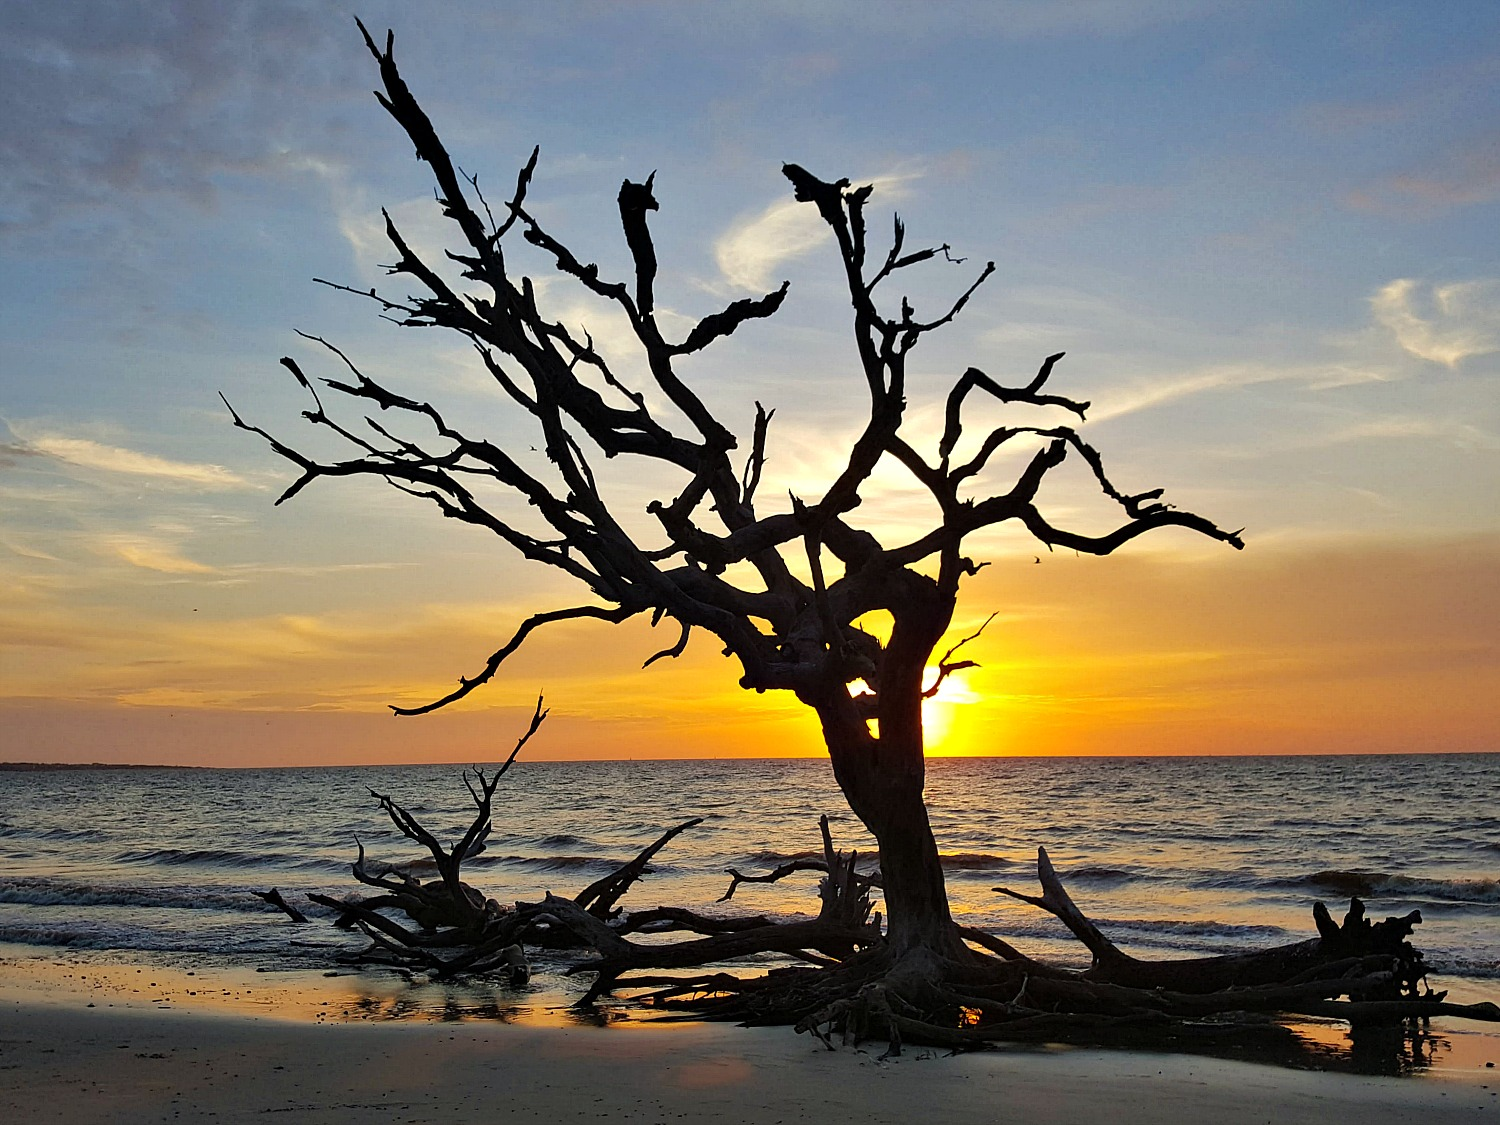 Jekyll Island driftwood beach at sunrise.